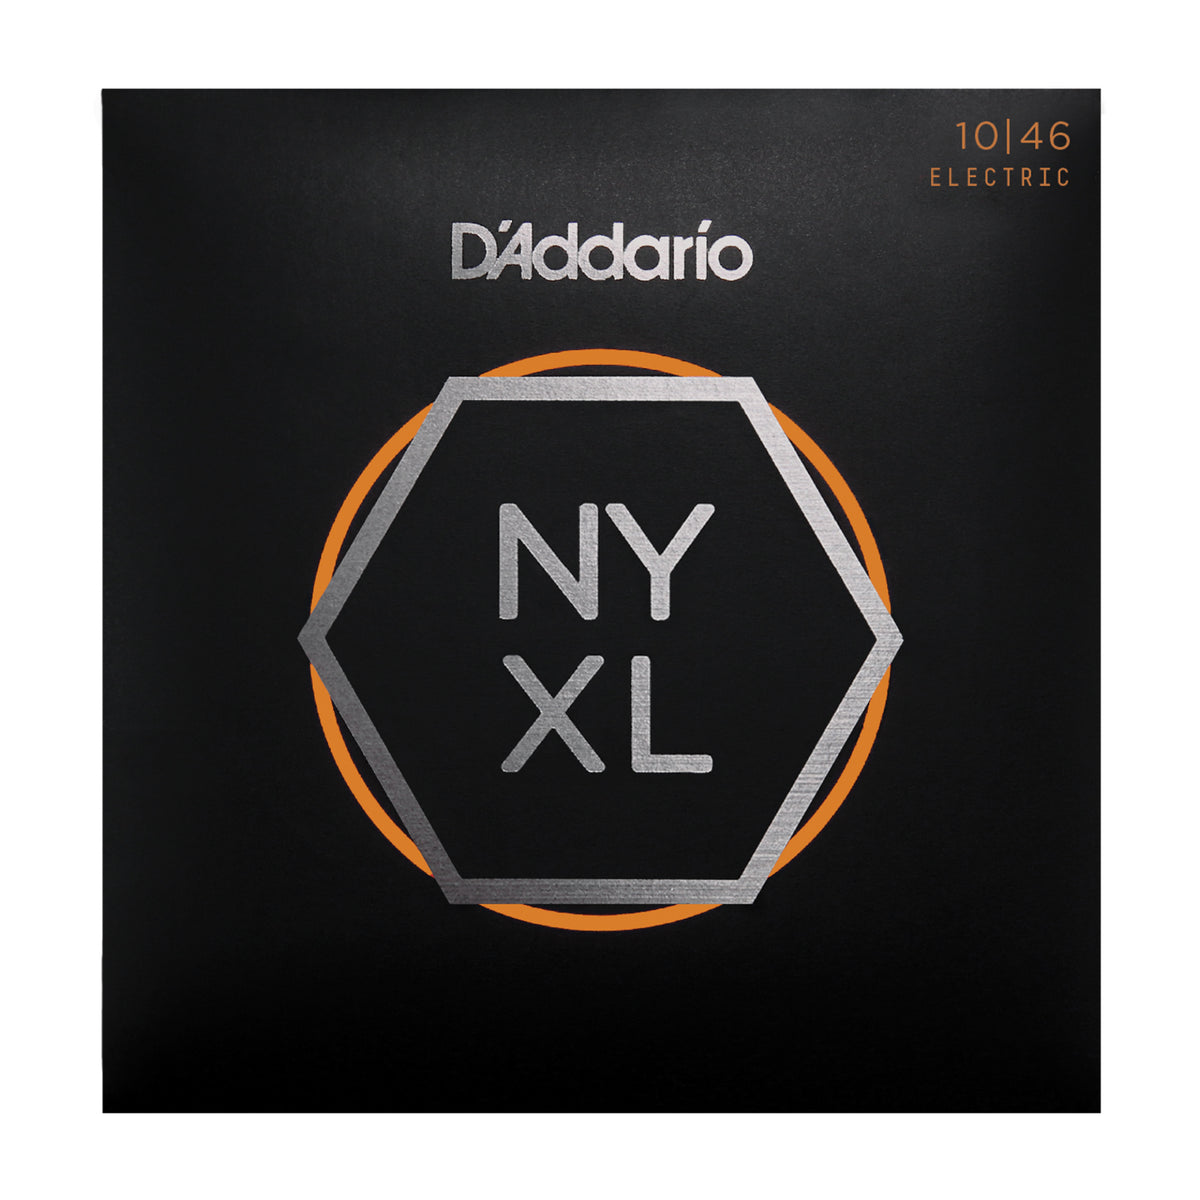 D'Addario NYXL1046 Nickel Wound, Regular Light, 10-46 - Tarpley Music Company, Inc.